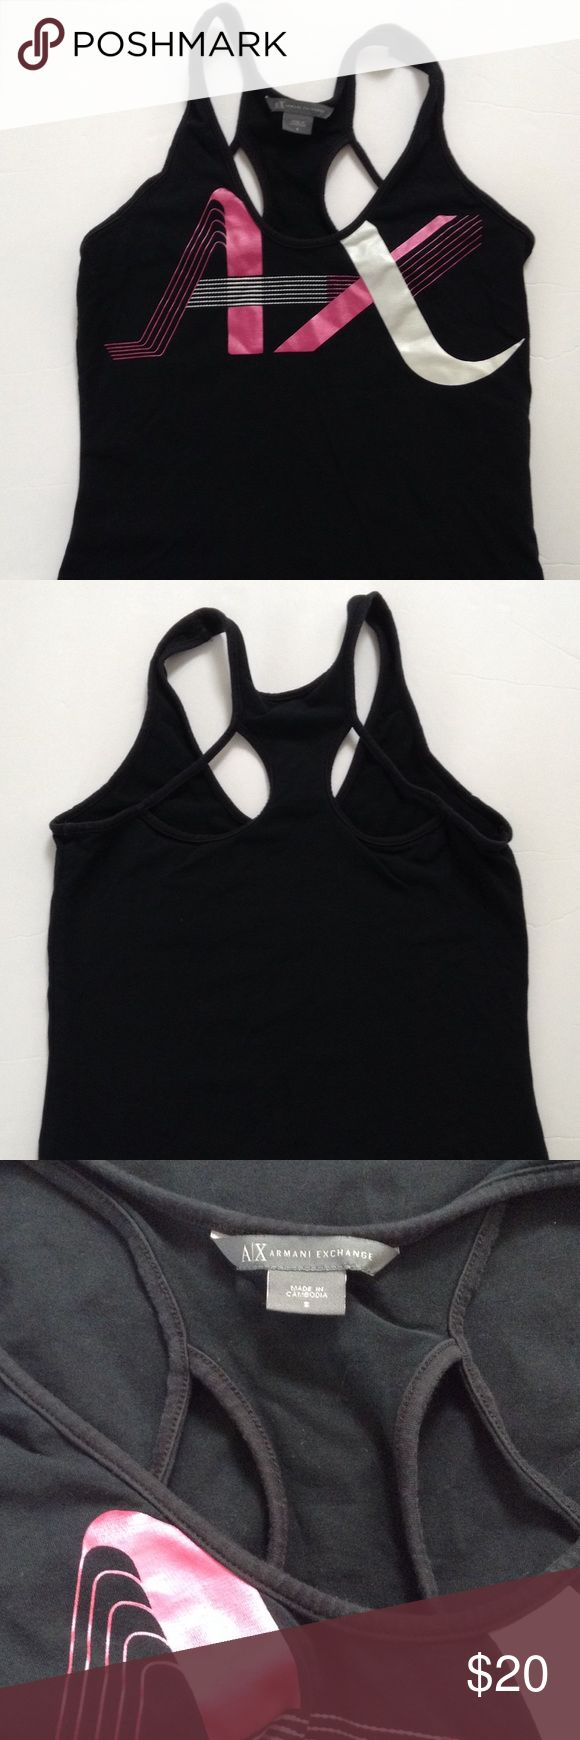 Armani Exchange Tank Top Good condition Armani Exchange black halter style tank top- great for workouts. Black color with with pink/with brand design. A/X Armani Exchange Tops Tank Tops